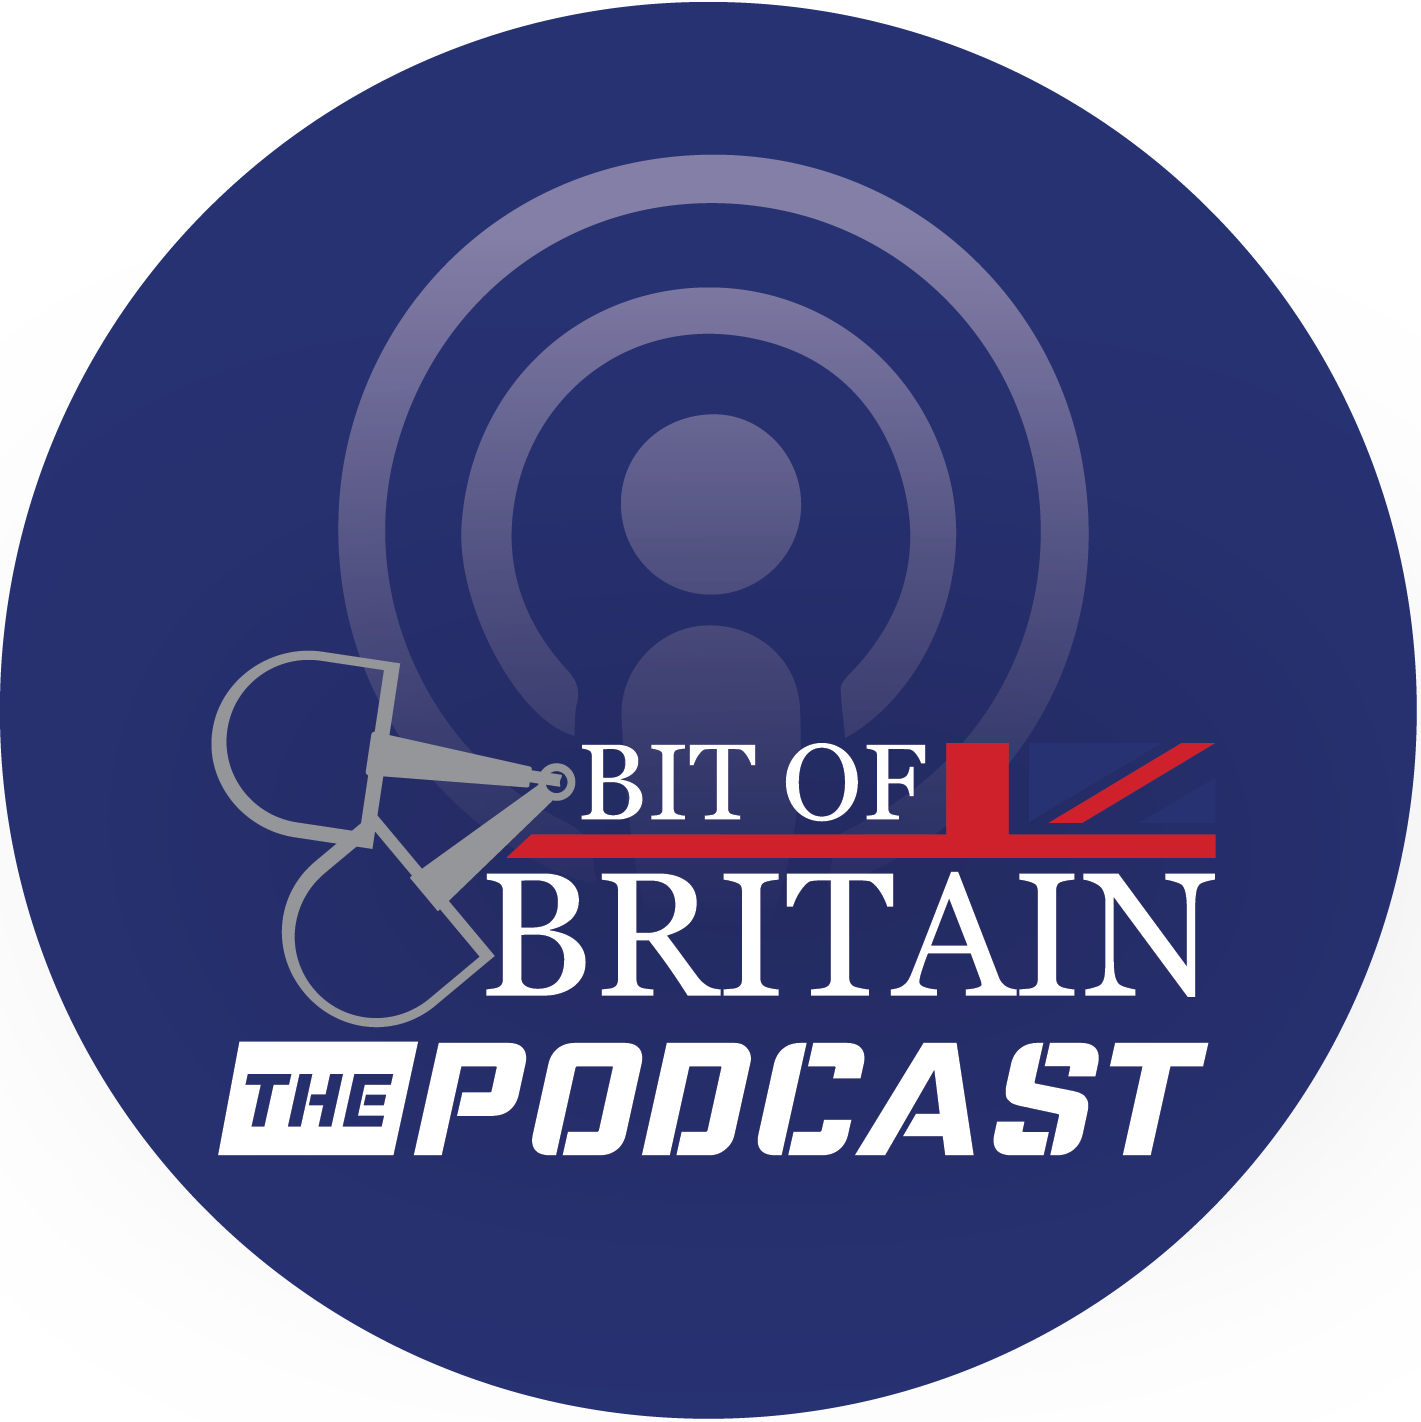 Bit of Britain Podcast